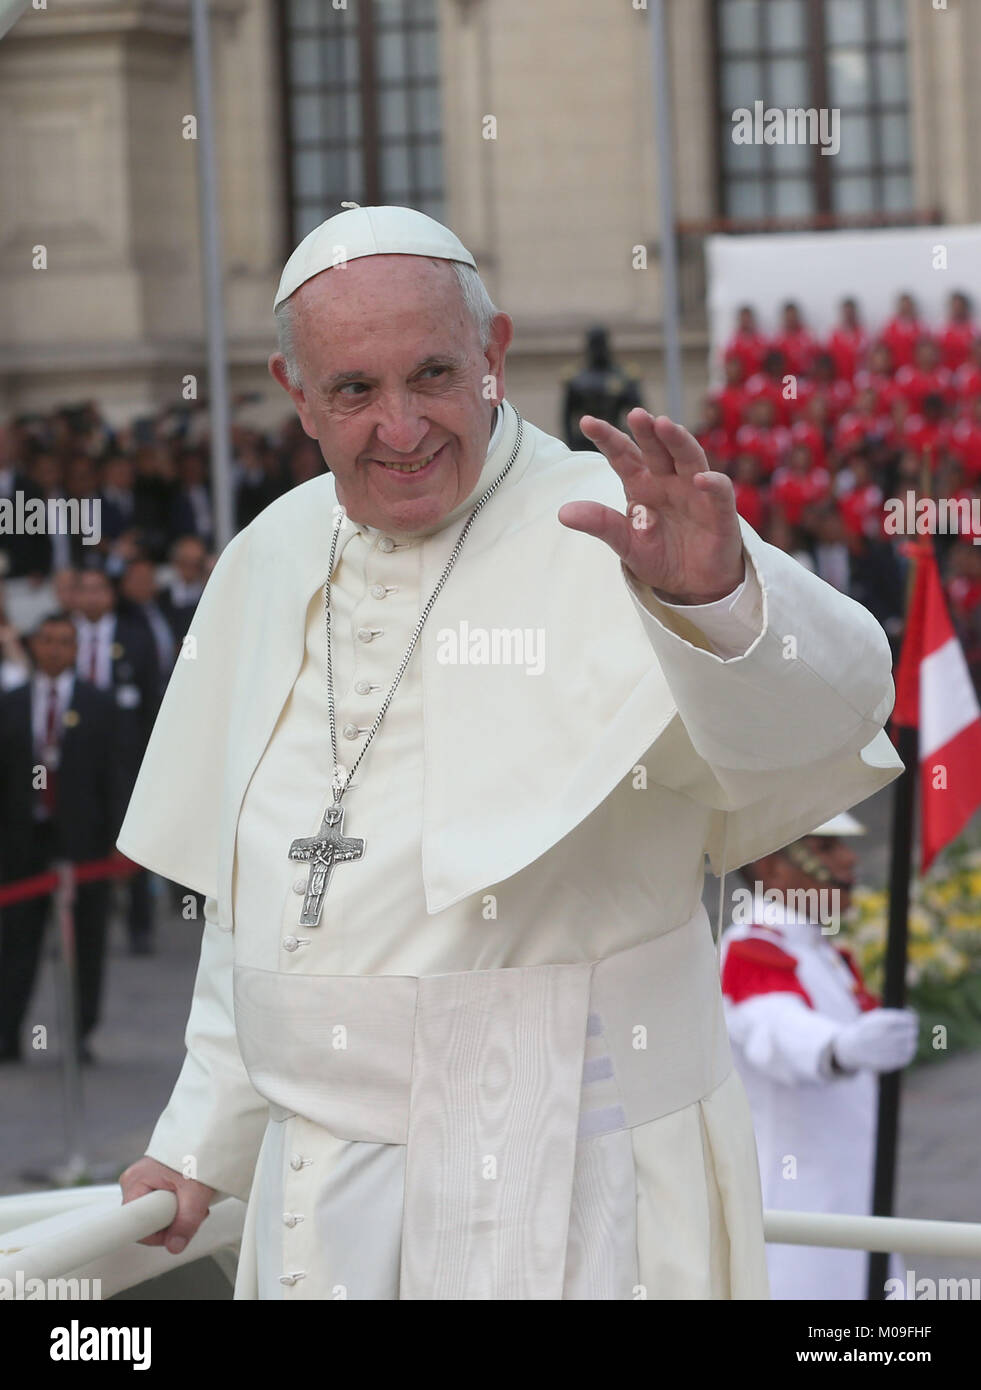 Pope Francis greets devotees at the Government Palace, in Lima, Peru, 19 January 2018. The pontiff is in Peru for - Stock Image